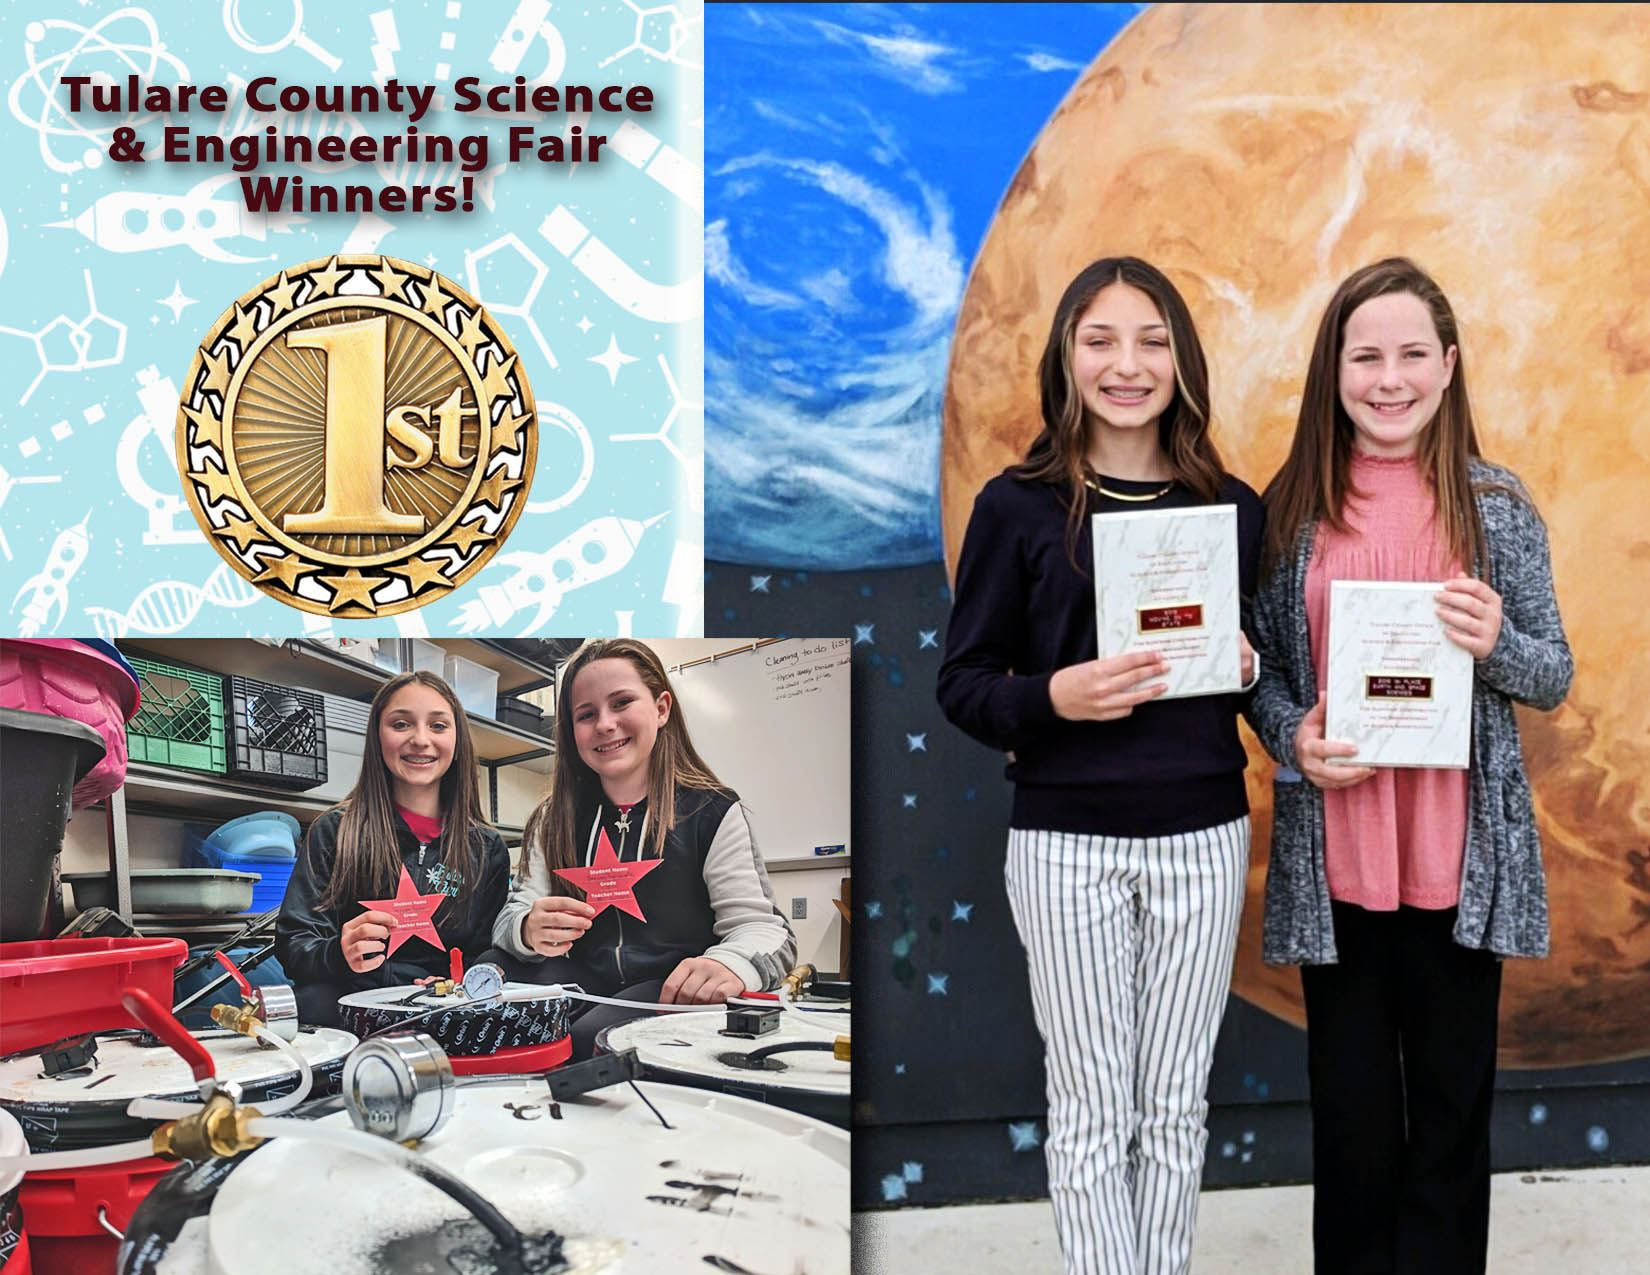 Jacqueline Rocha and Breann Amarante Win 1st place at the Tulare County Science & Engineering Fair.